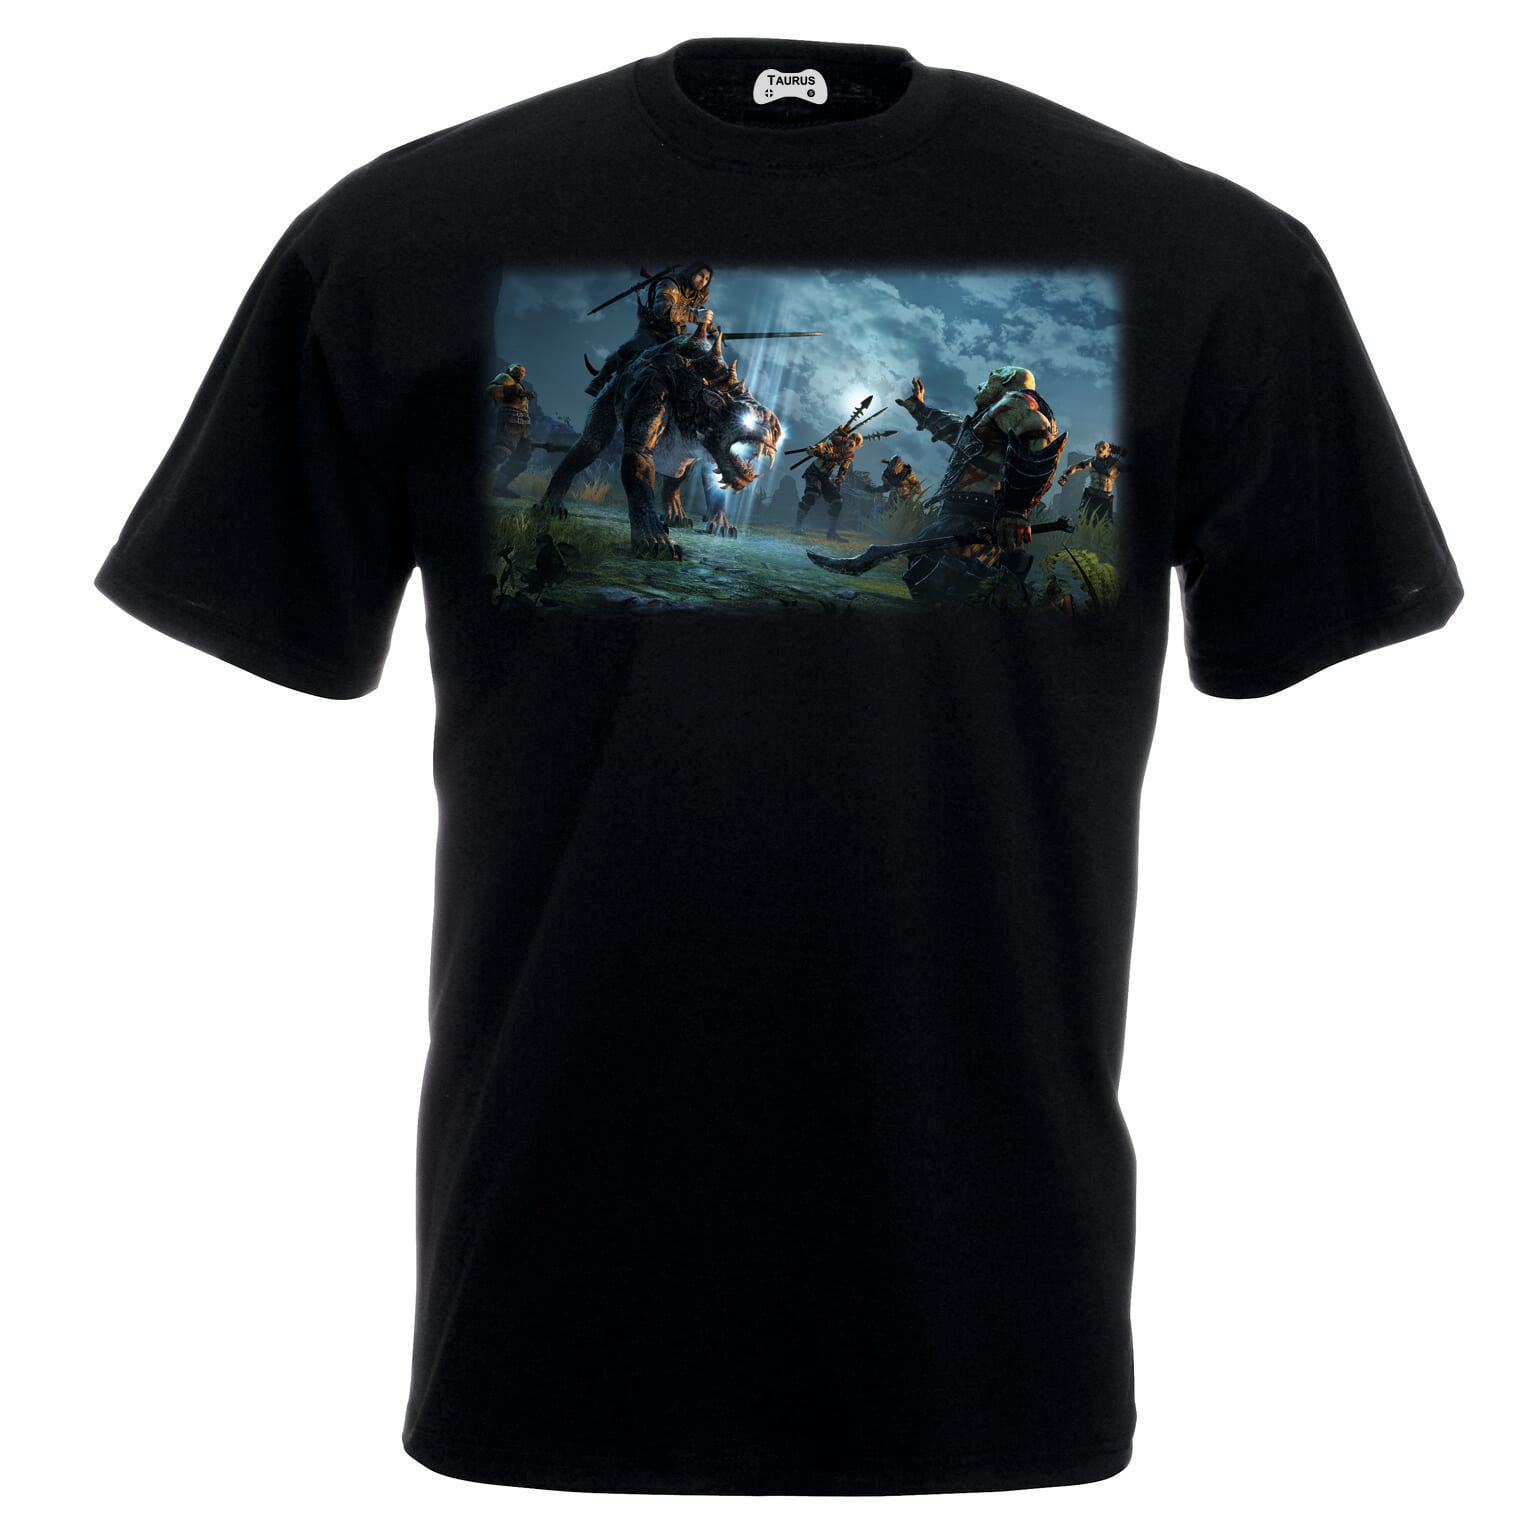 Shadow Of Mordor T-Shirt Players